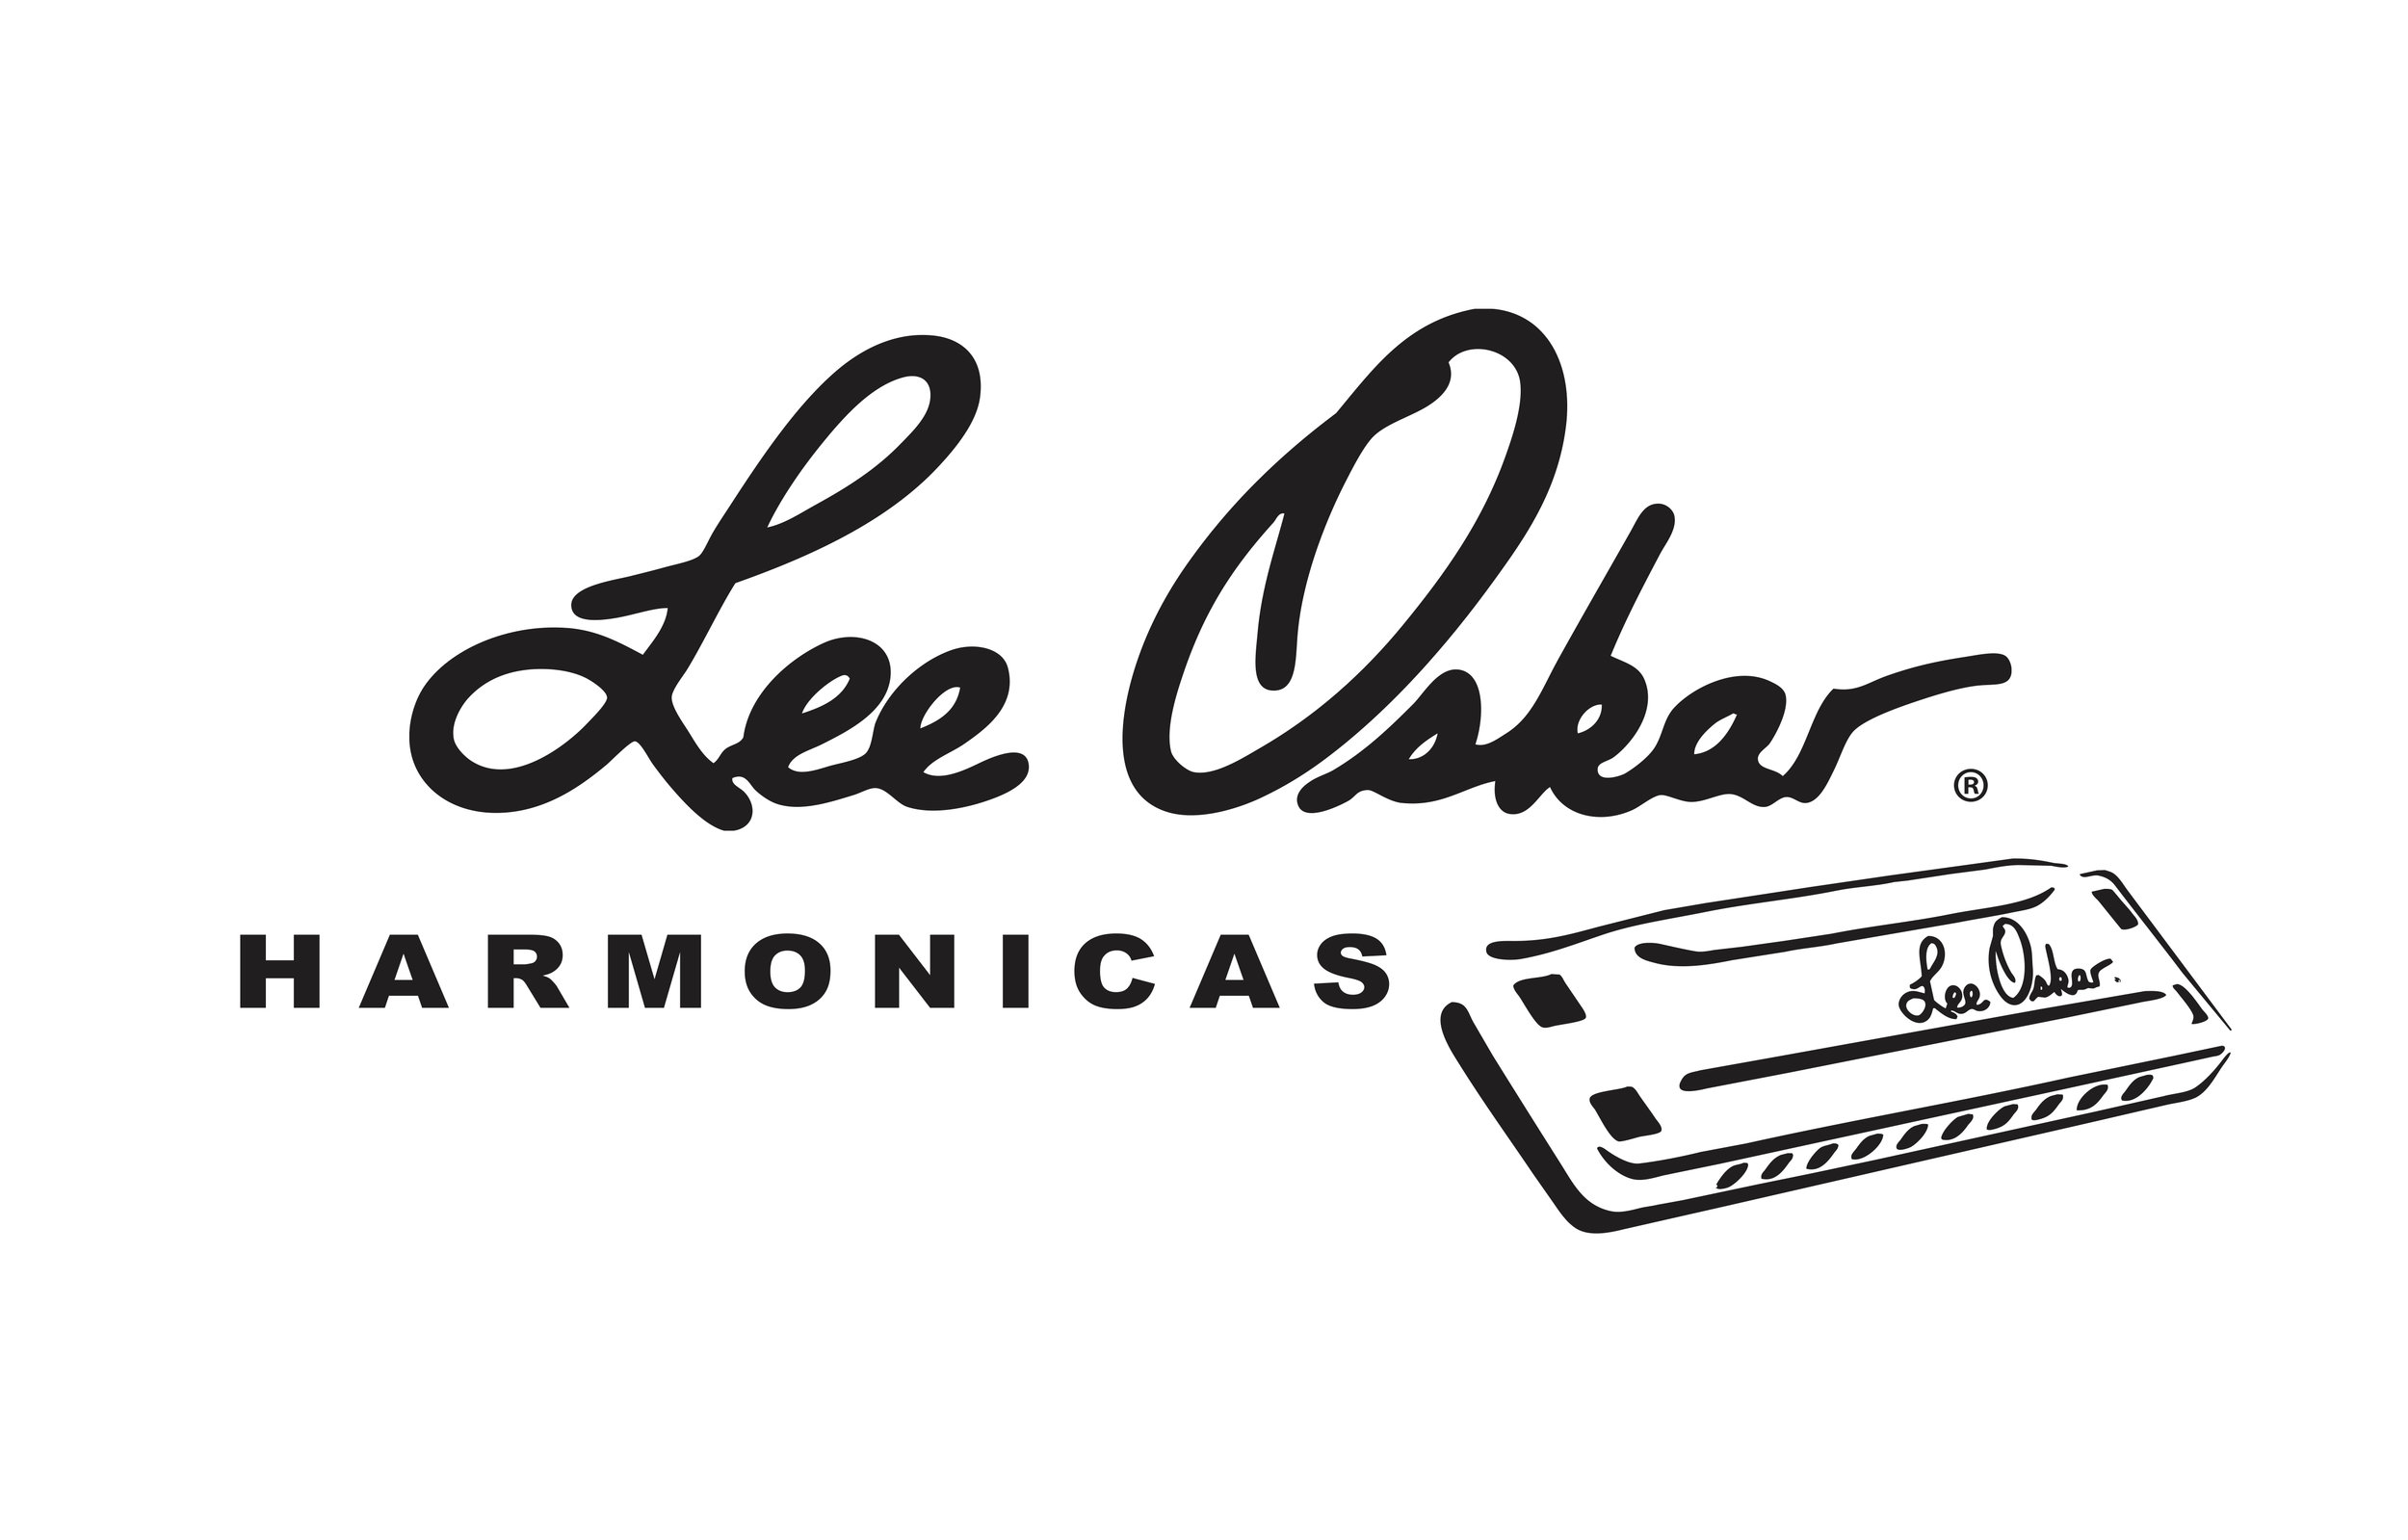 Bobby Rush is proudly sponsored by Lee Oskar Harmonicas.